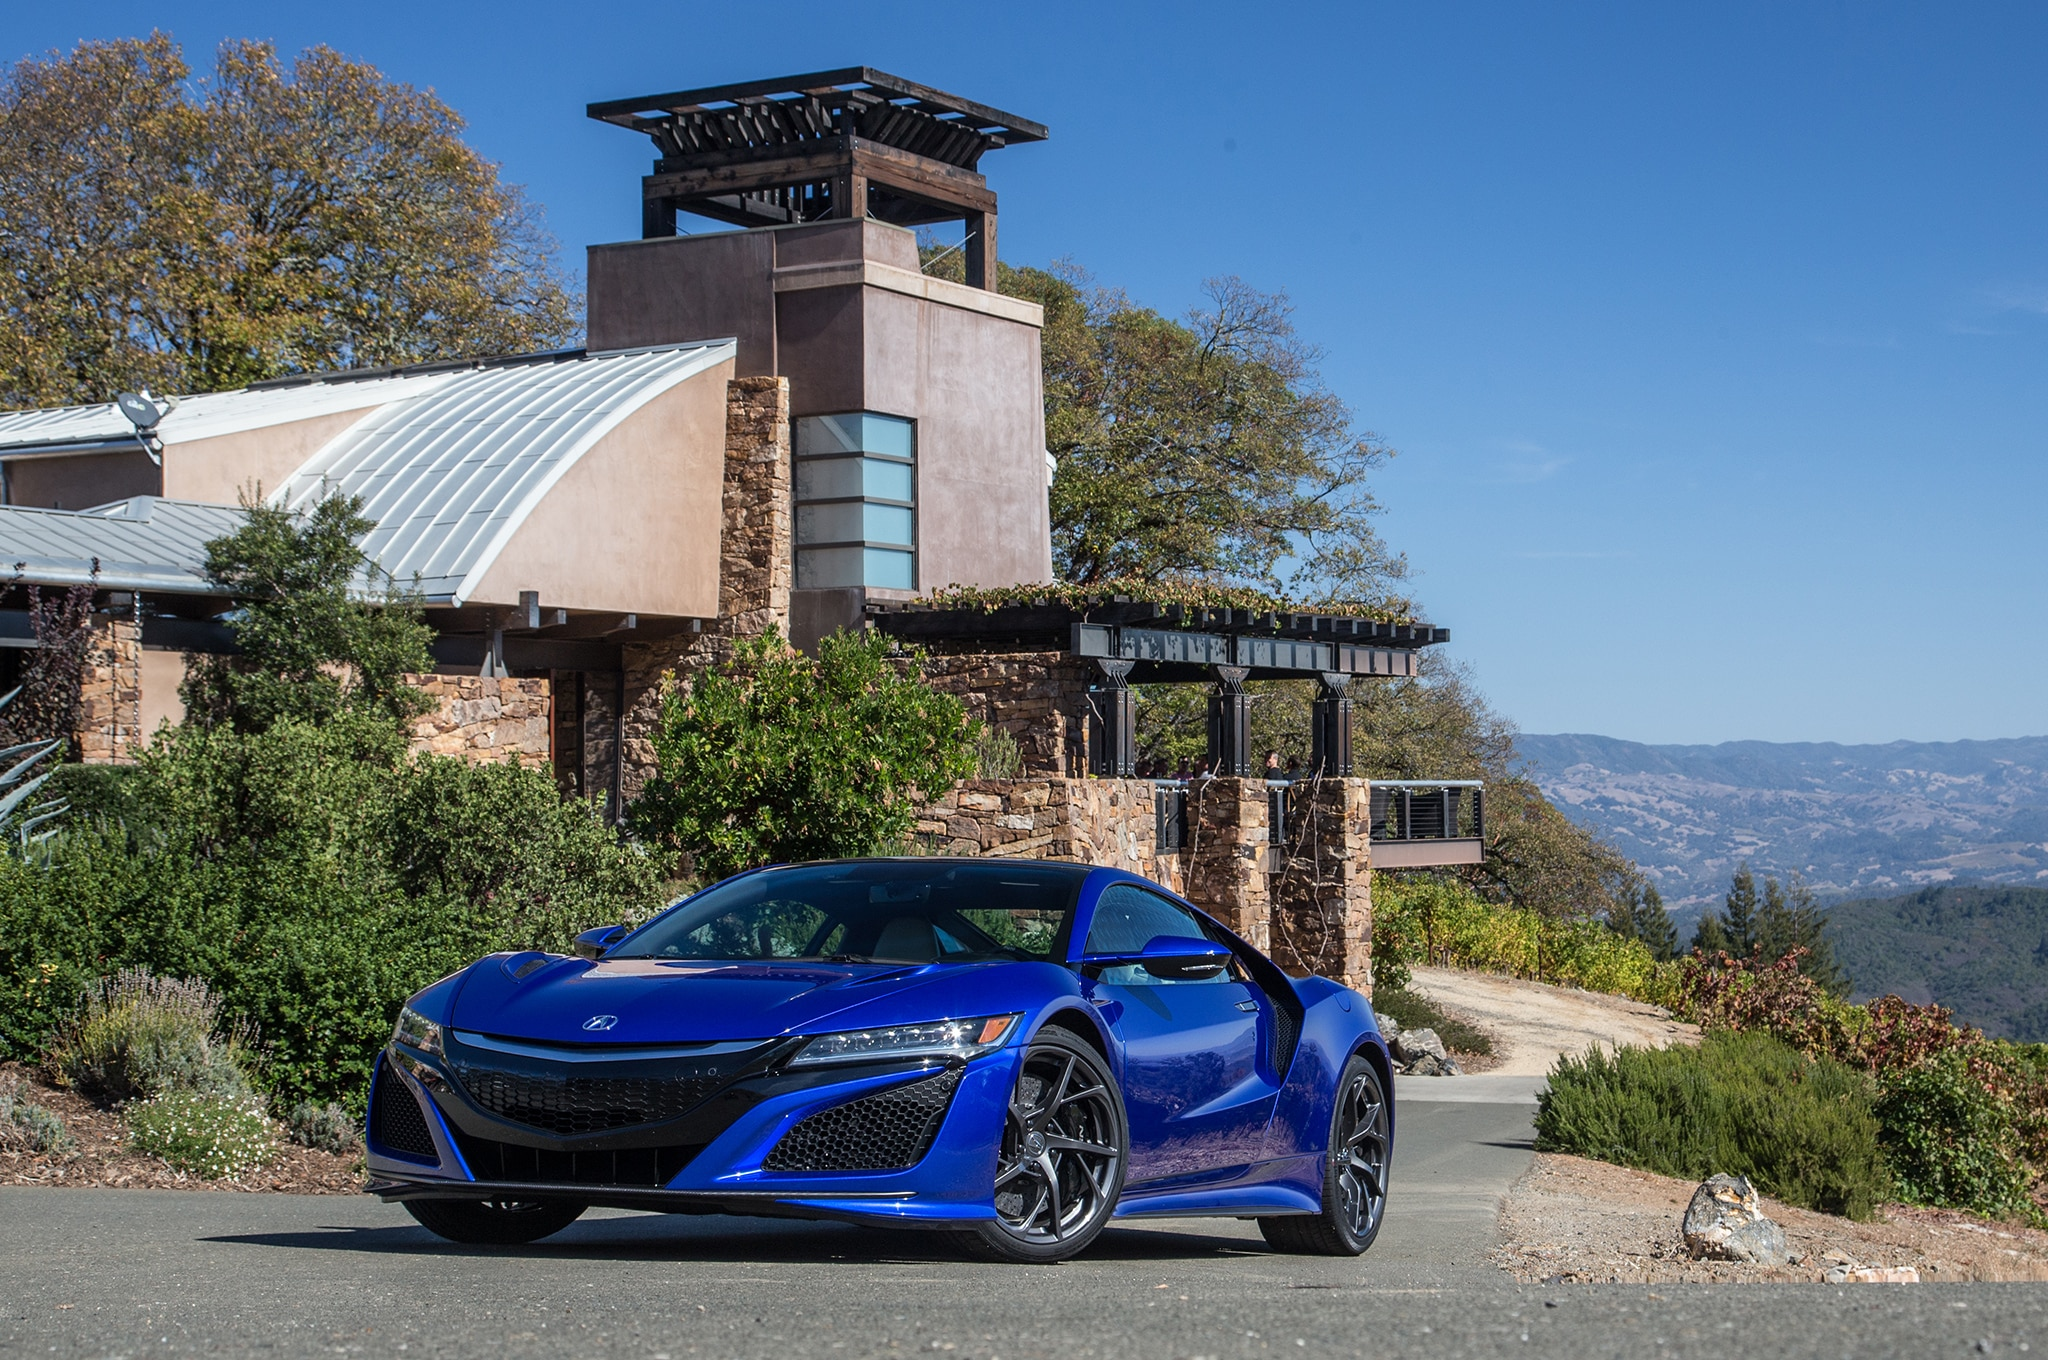 2017 acura nsx first drive roadtest review | automobile magazine